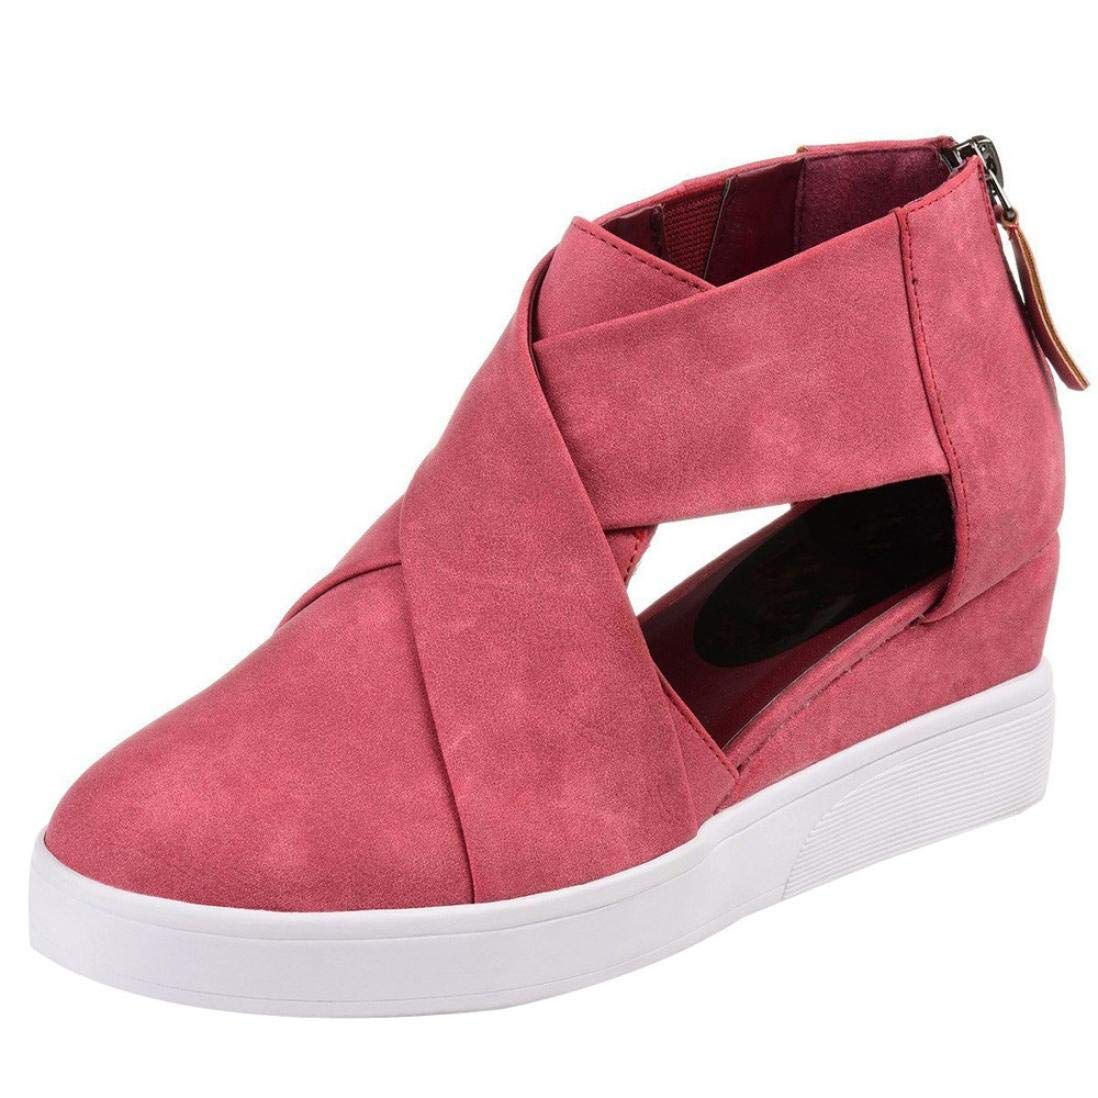 NEARTIME Promotion! Women Shoes, Autumn Fashion Ladies Increased Casual Single Shoes Zipper Flat Hollow Out Sandals